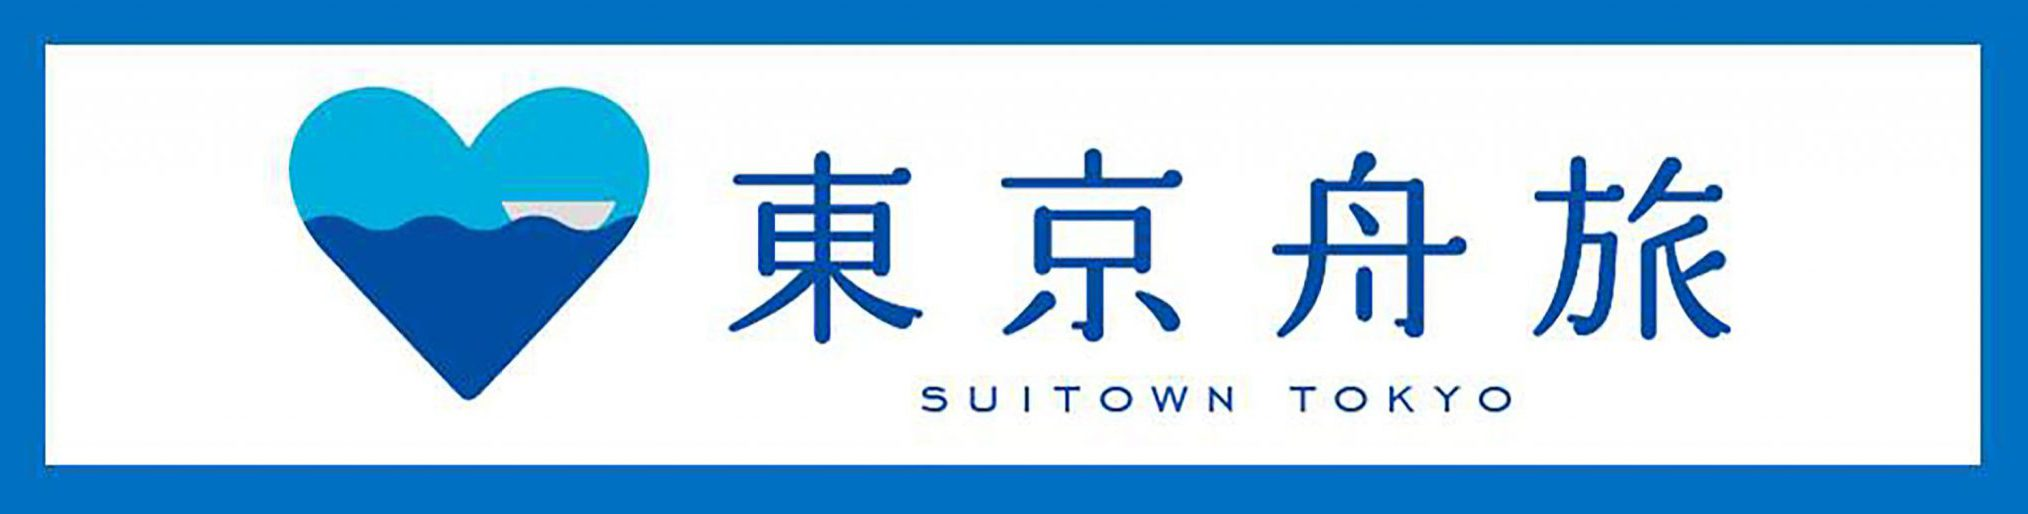 suitown_banner